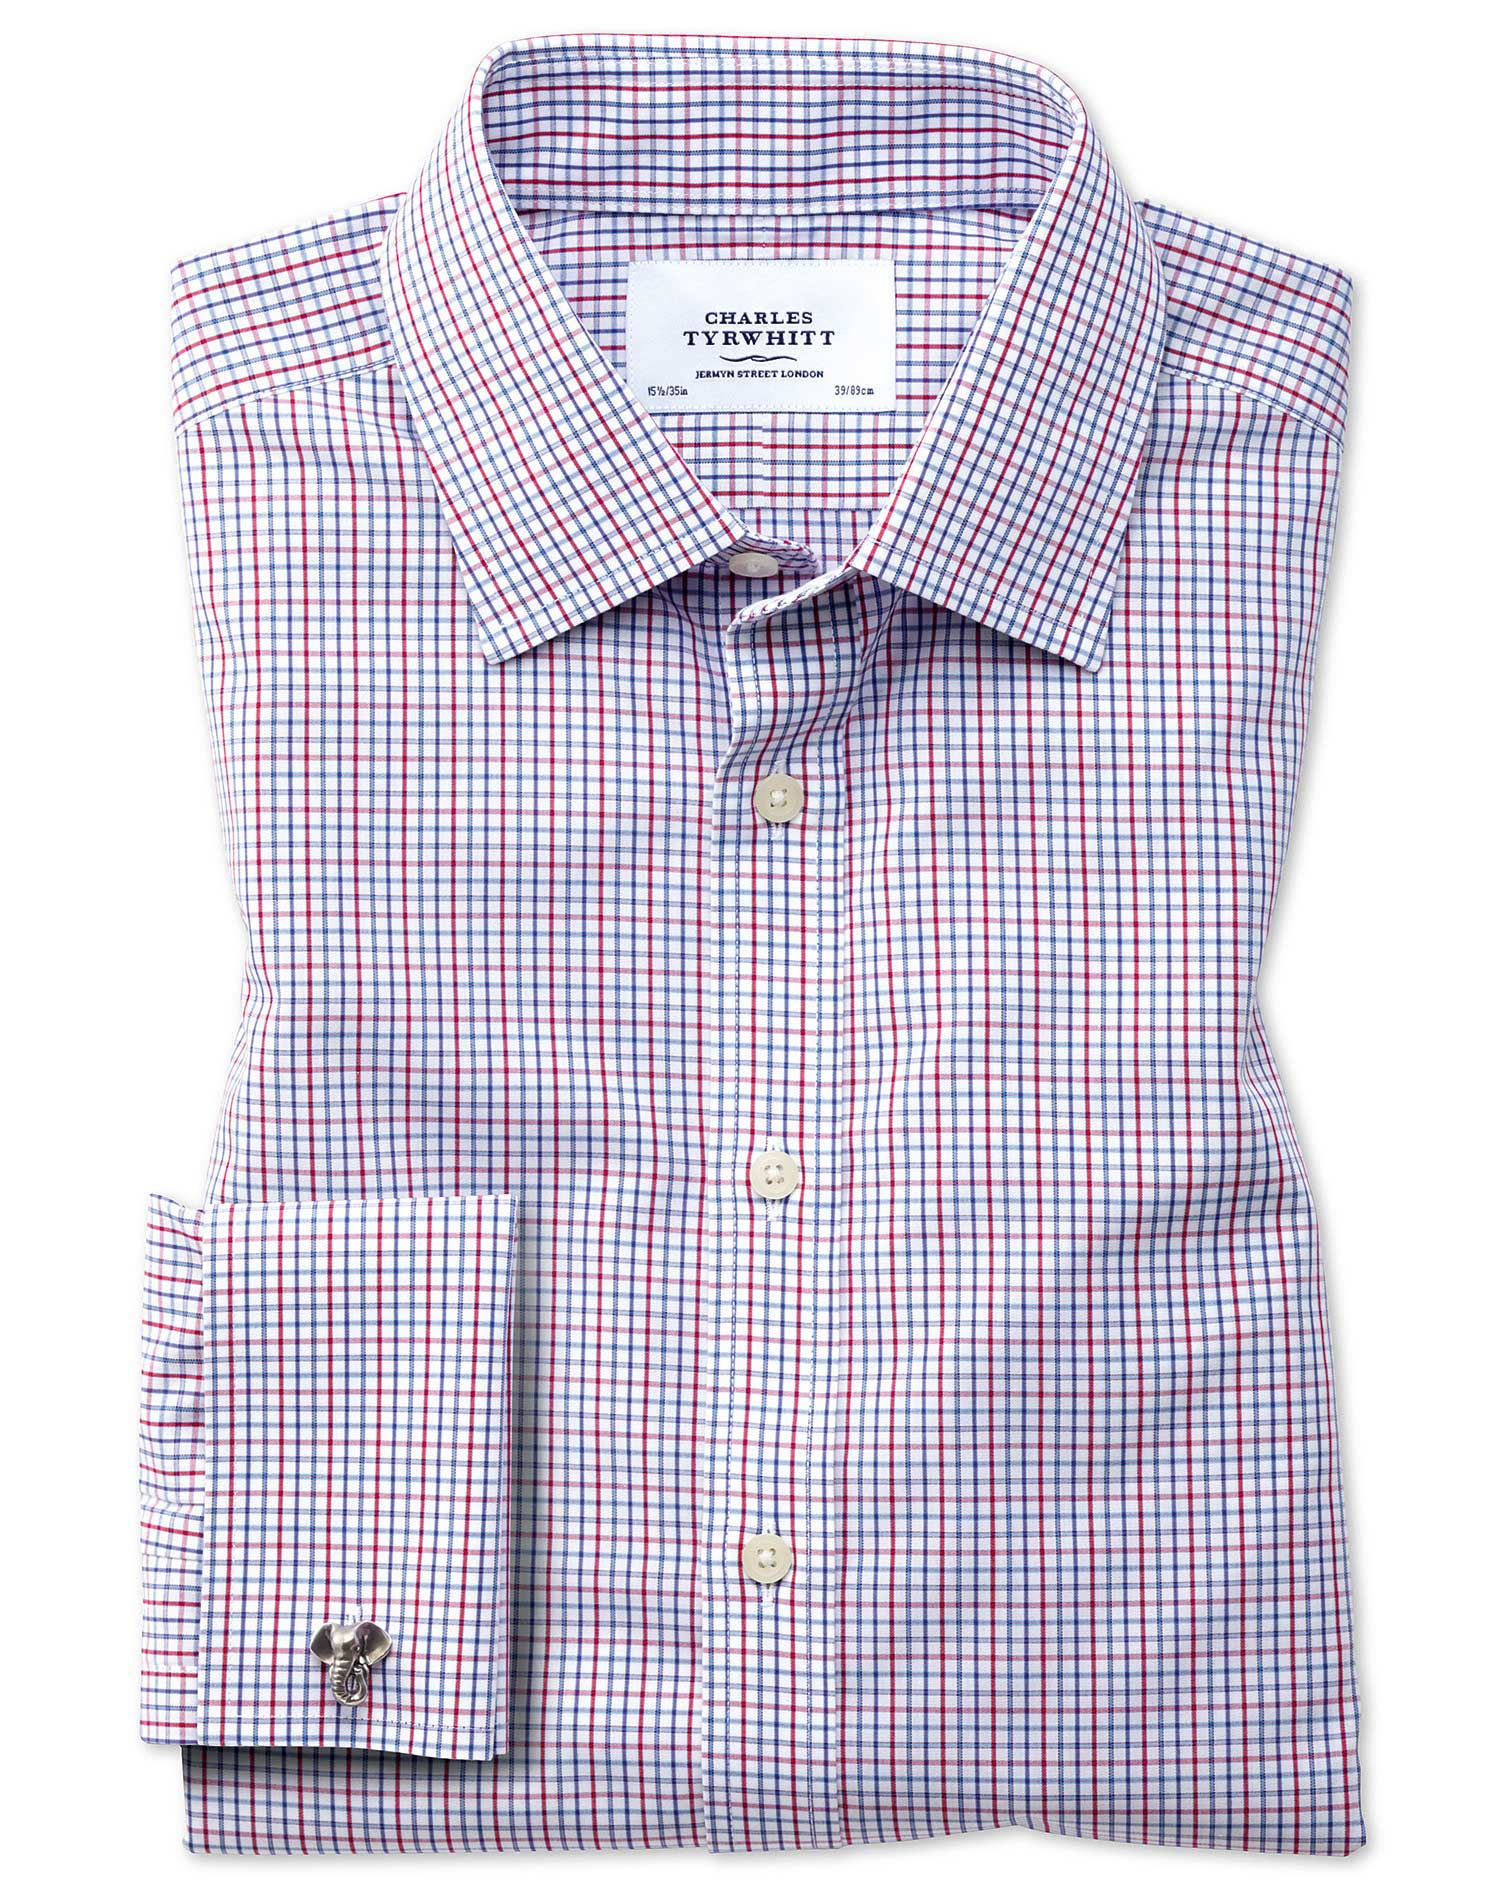 Extra Slim Fit Non-Iron Multi Grid Check Cotton Formal Shirt Single Cuff Size 15/32 by Charles Tyrwh